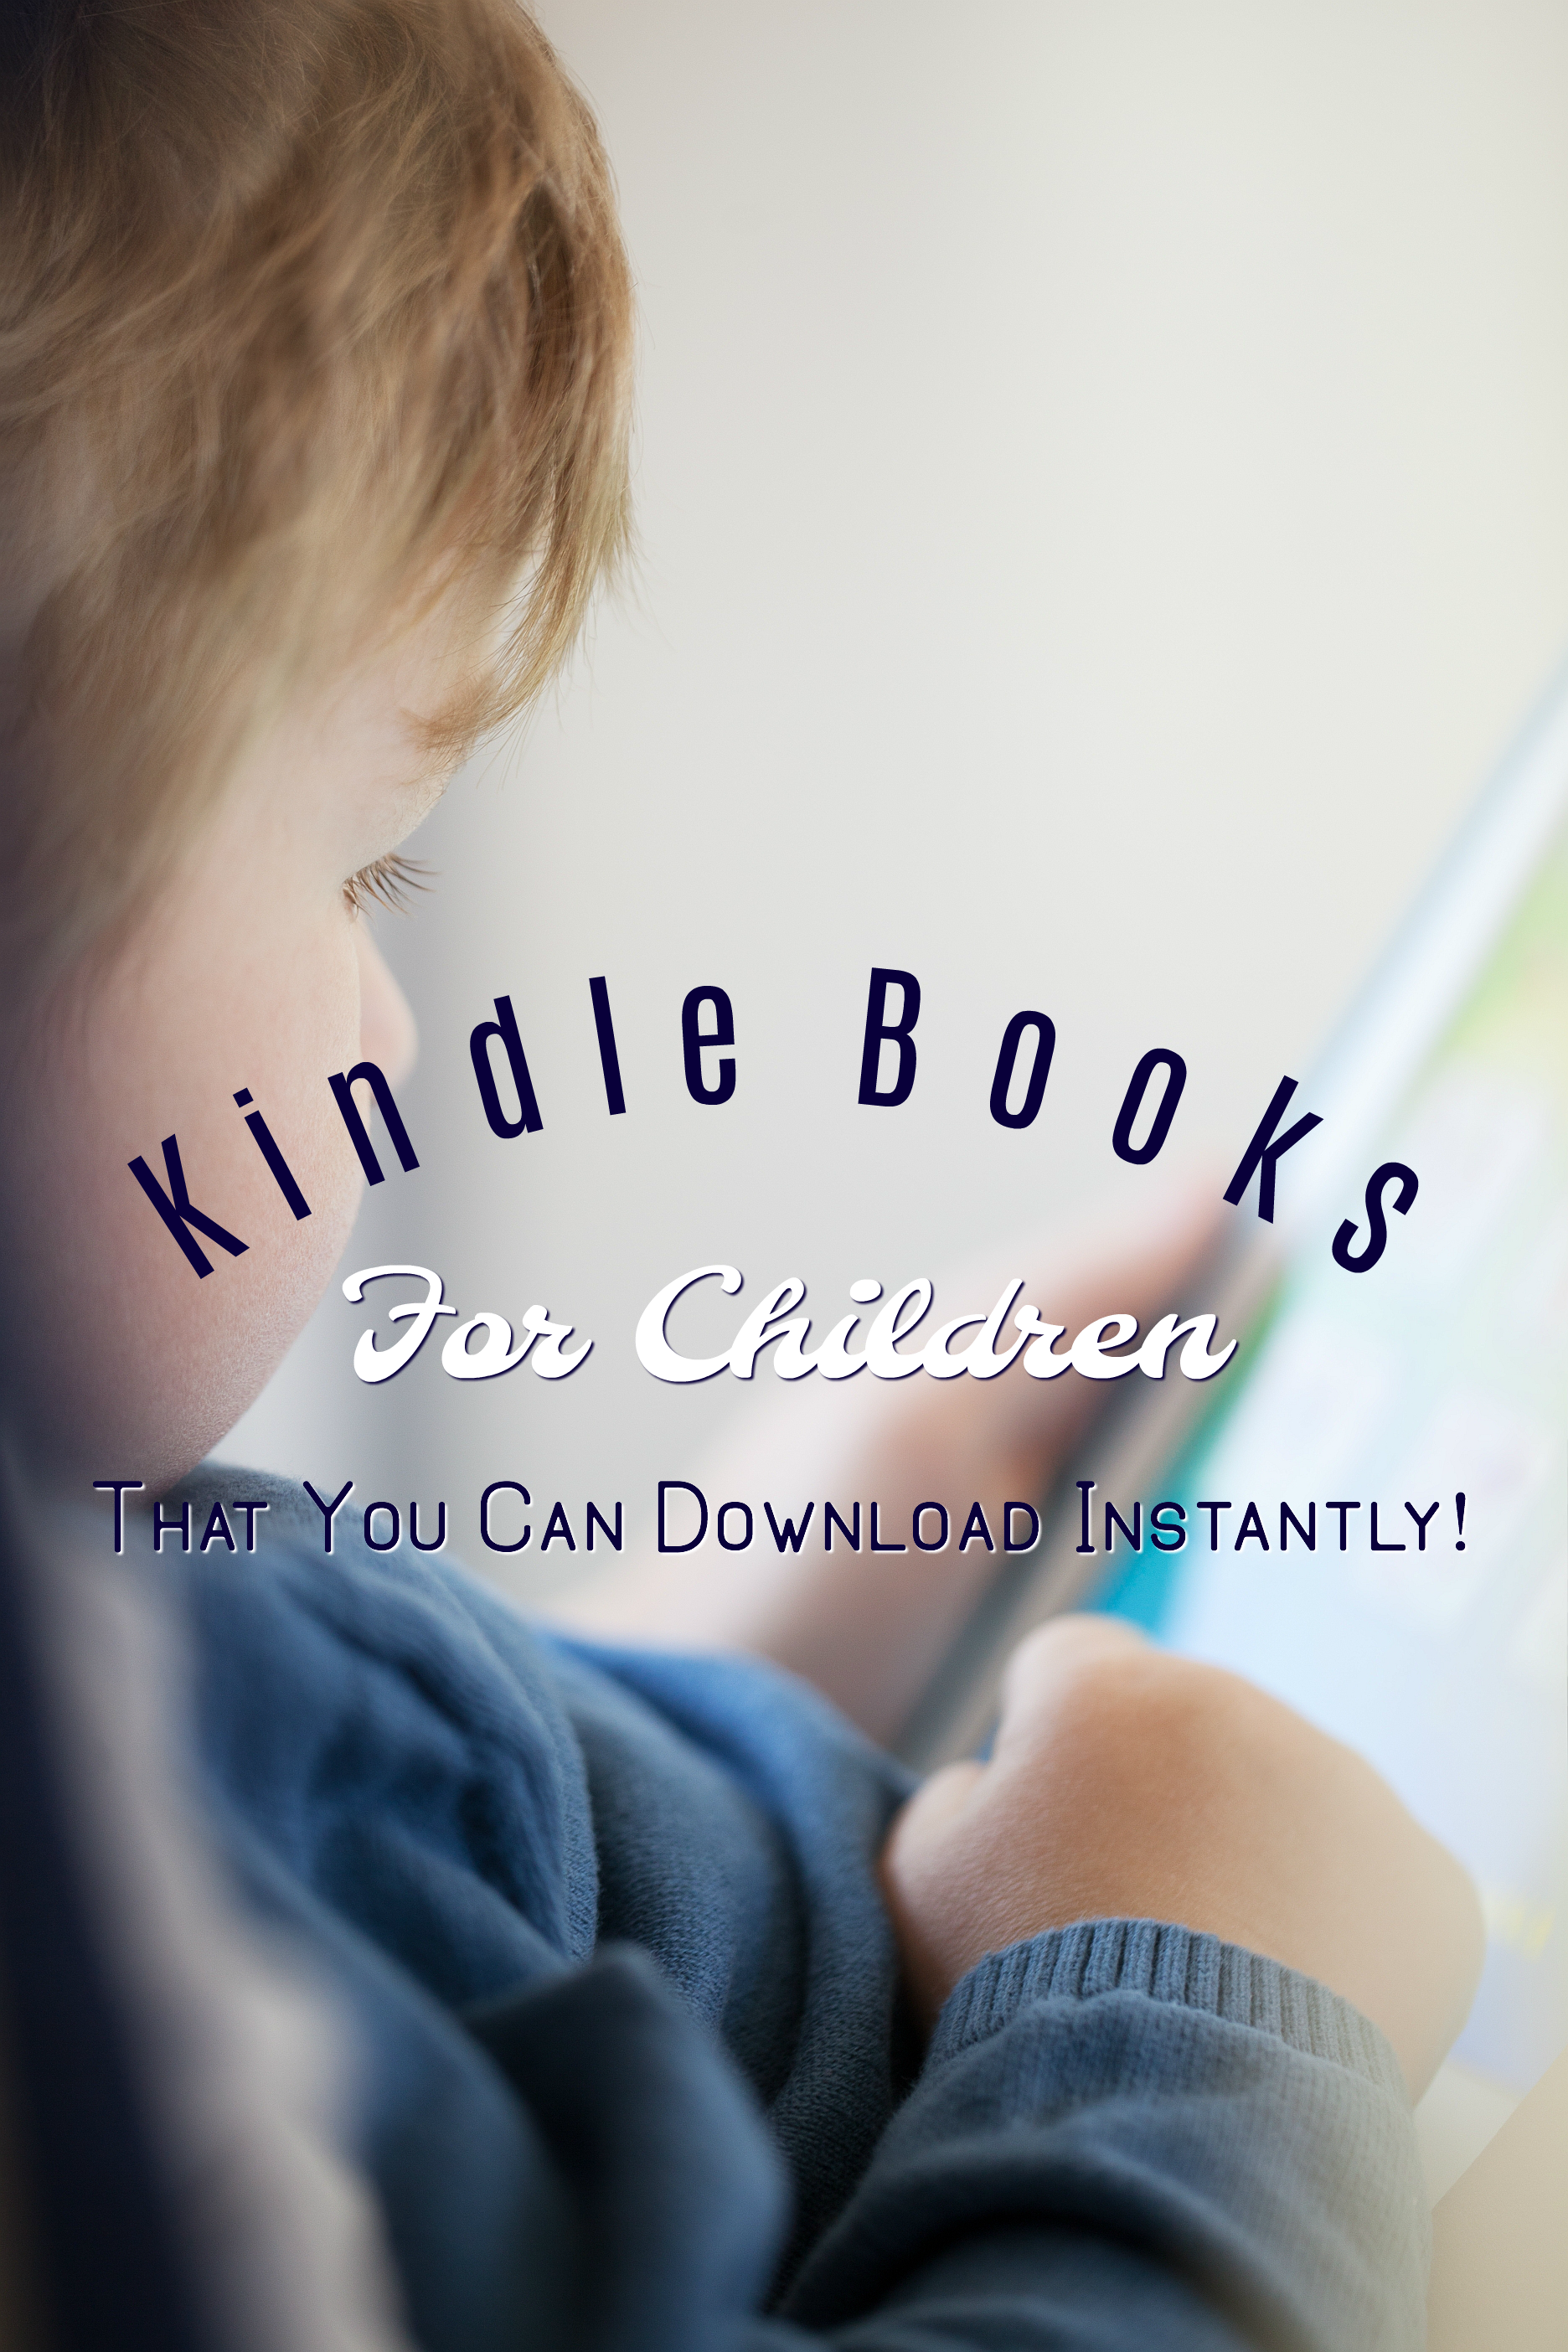 Read easily on-the-go with these Kindle books for children. Don't let the summer slide happen to your children.